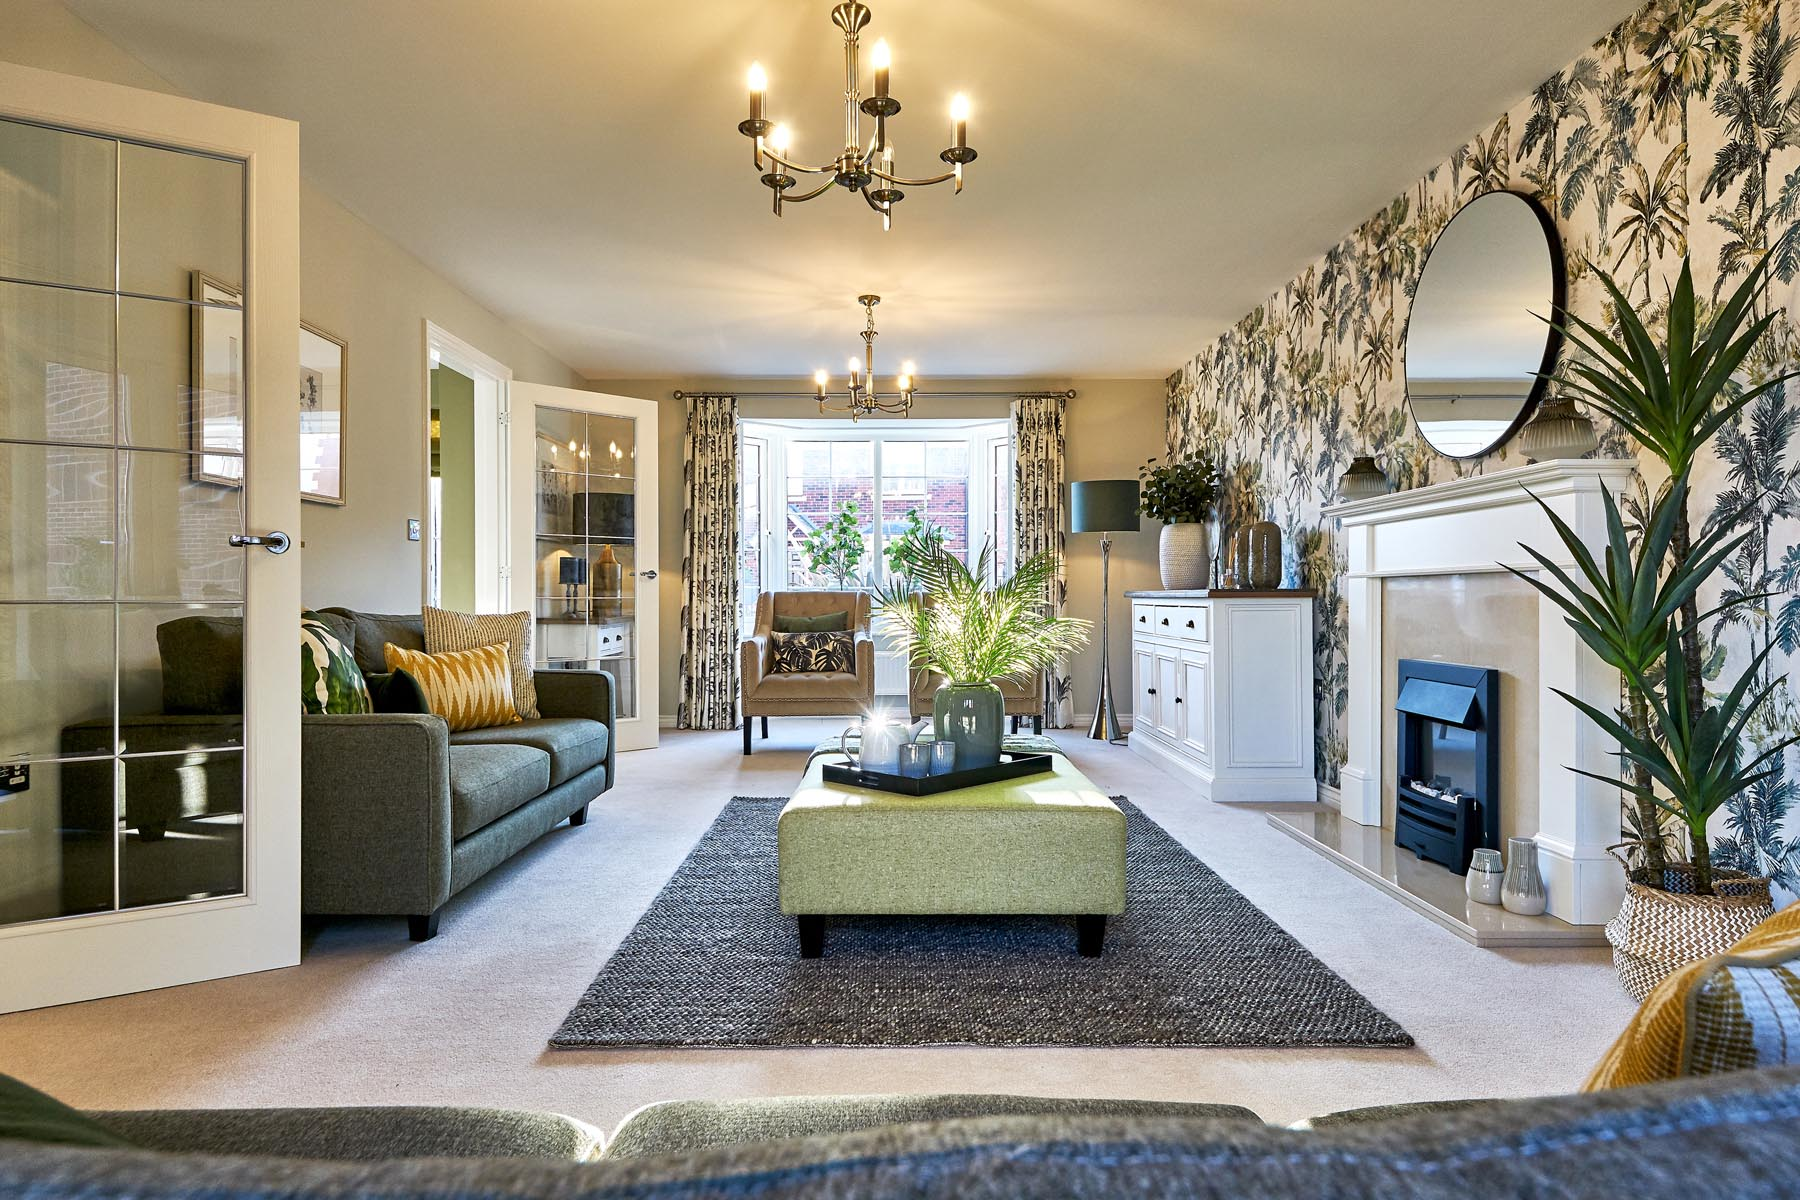 Wheatfield Manor - Heydon - Lounge